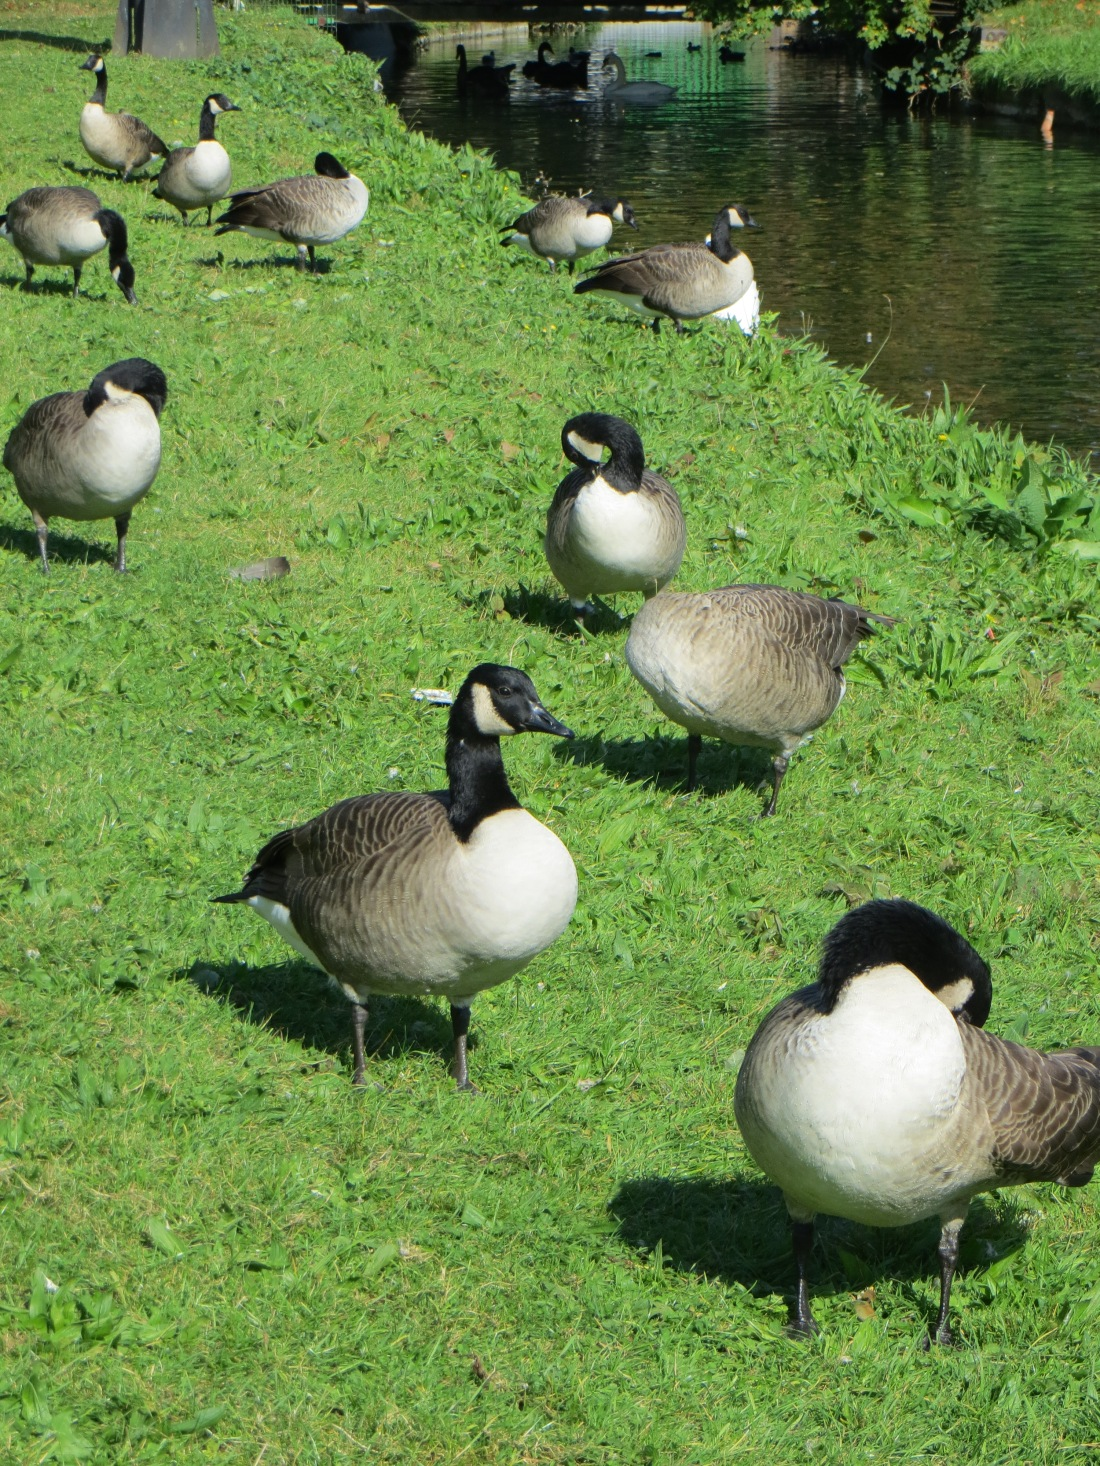 The Canada Geese